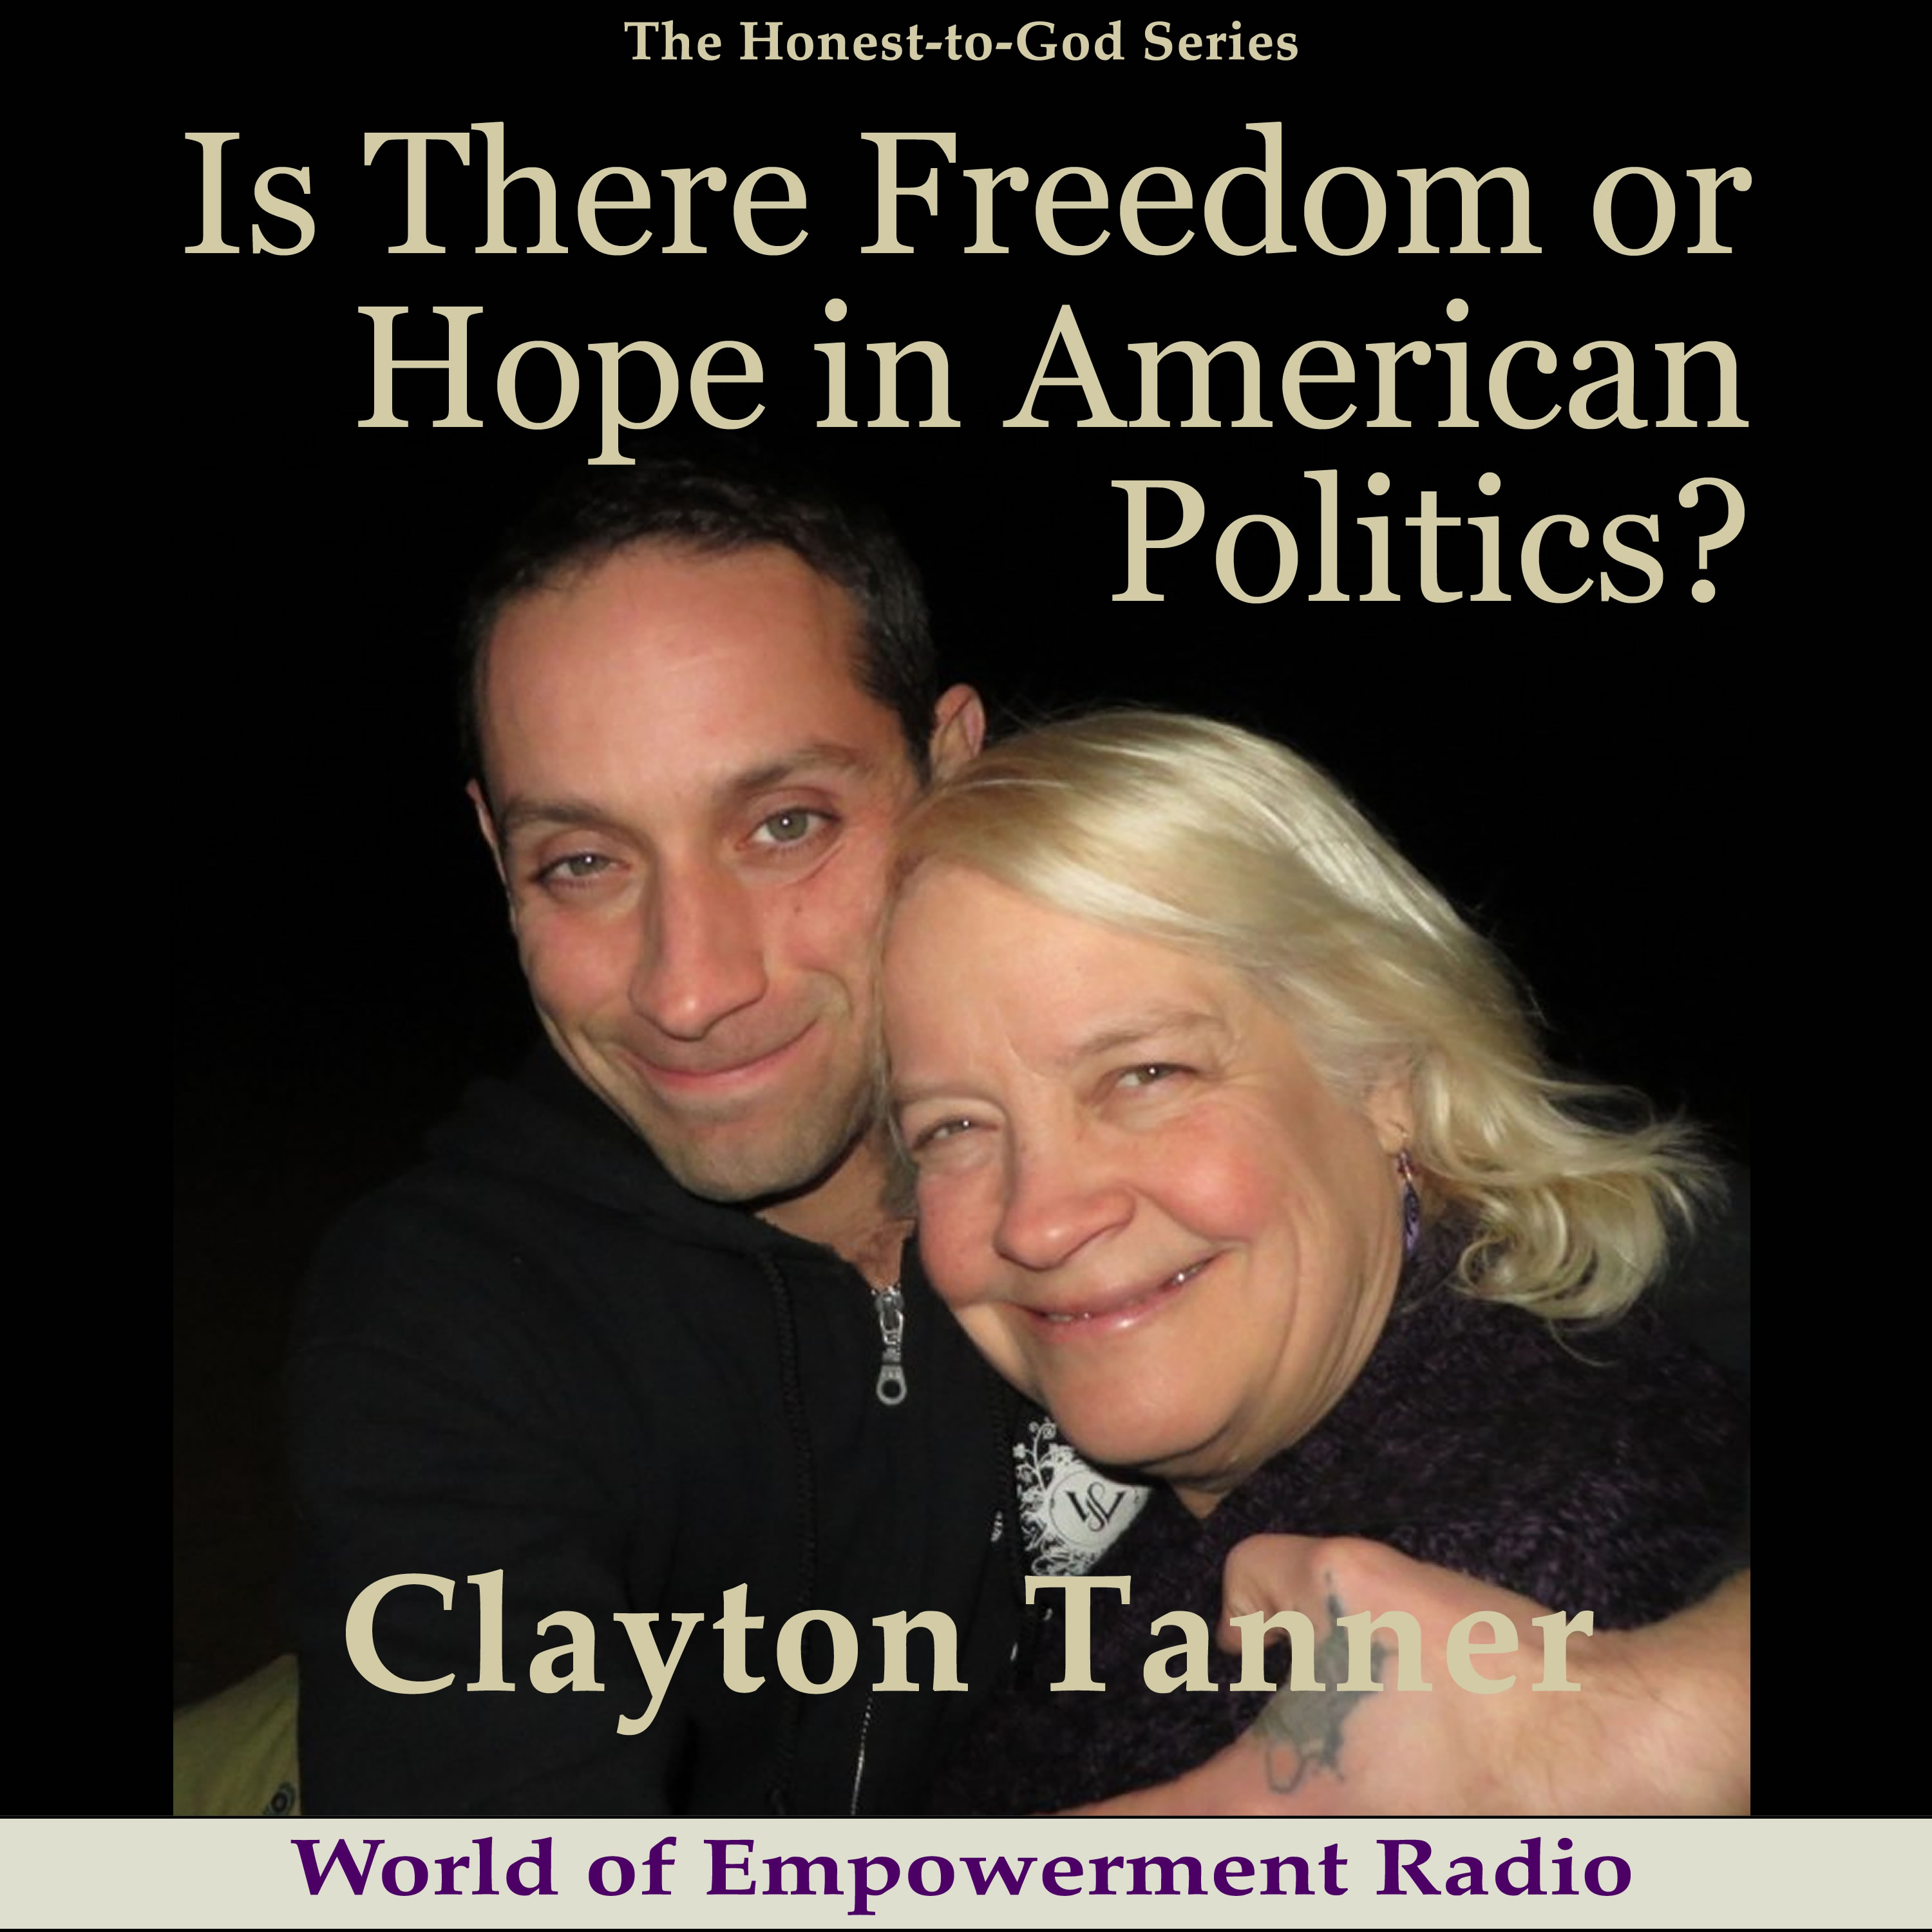 Clayton Tanner on American Politics